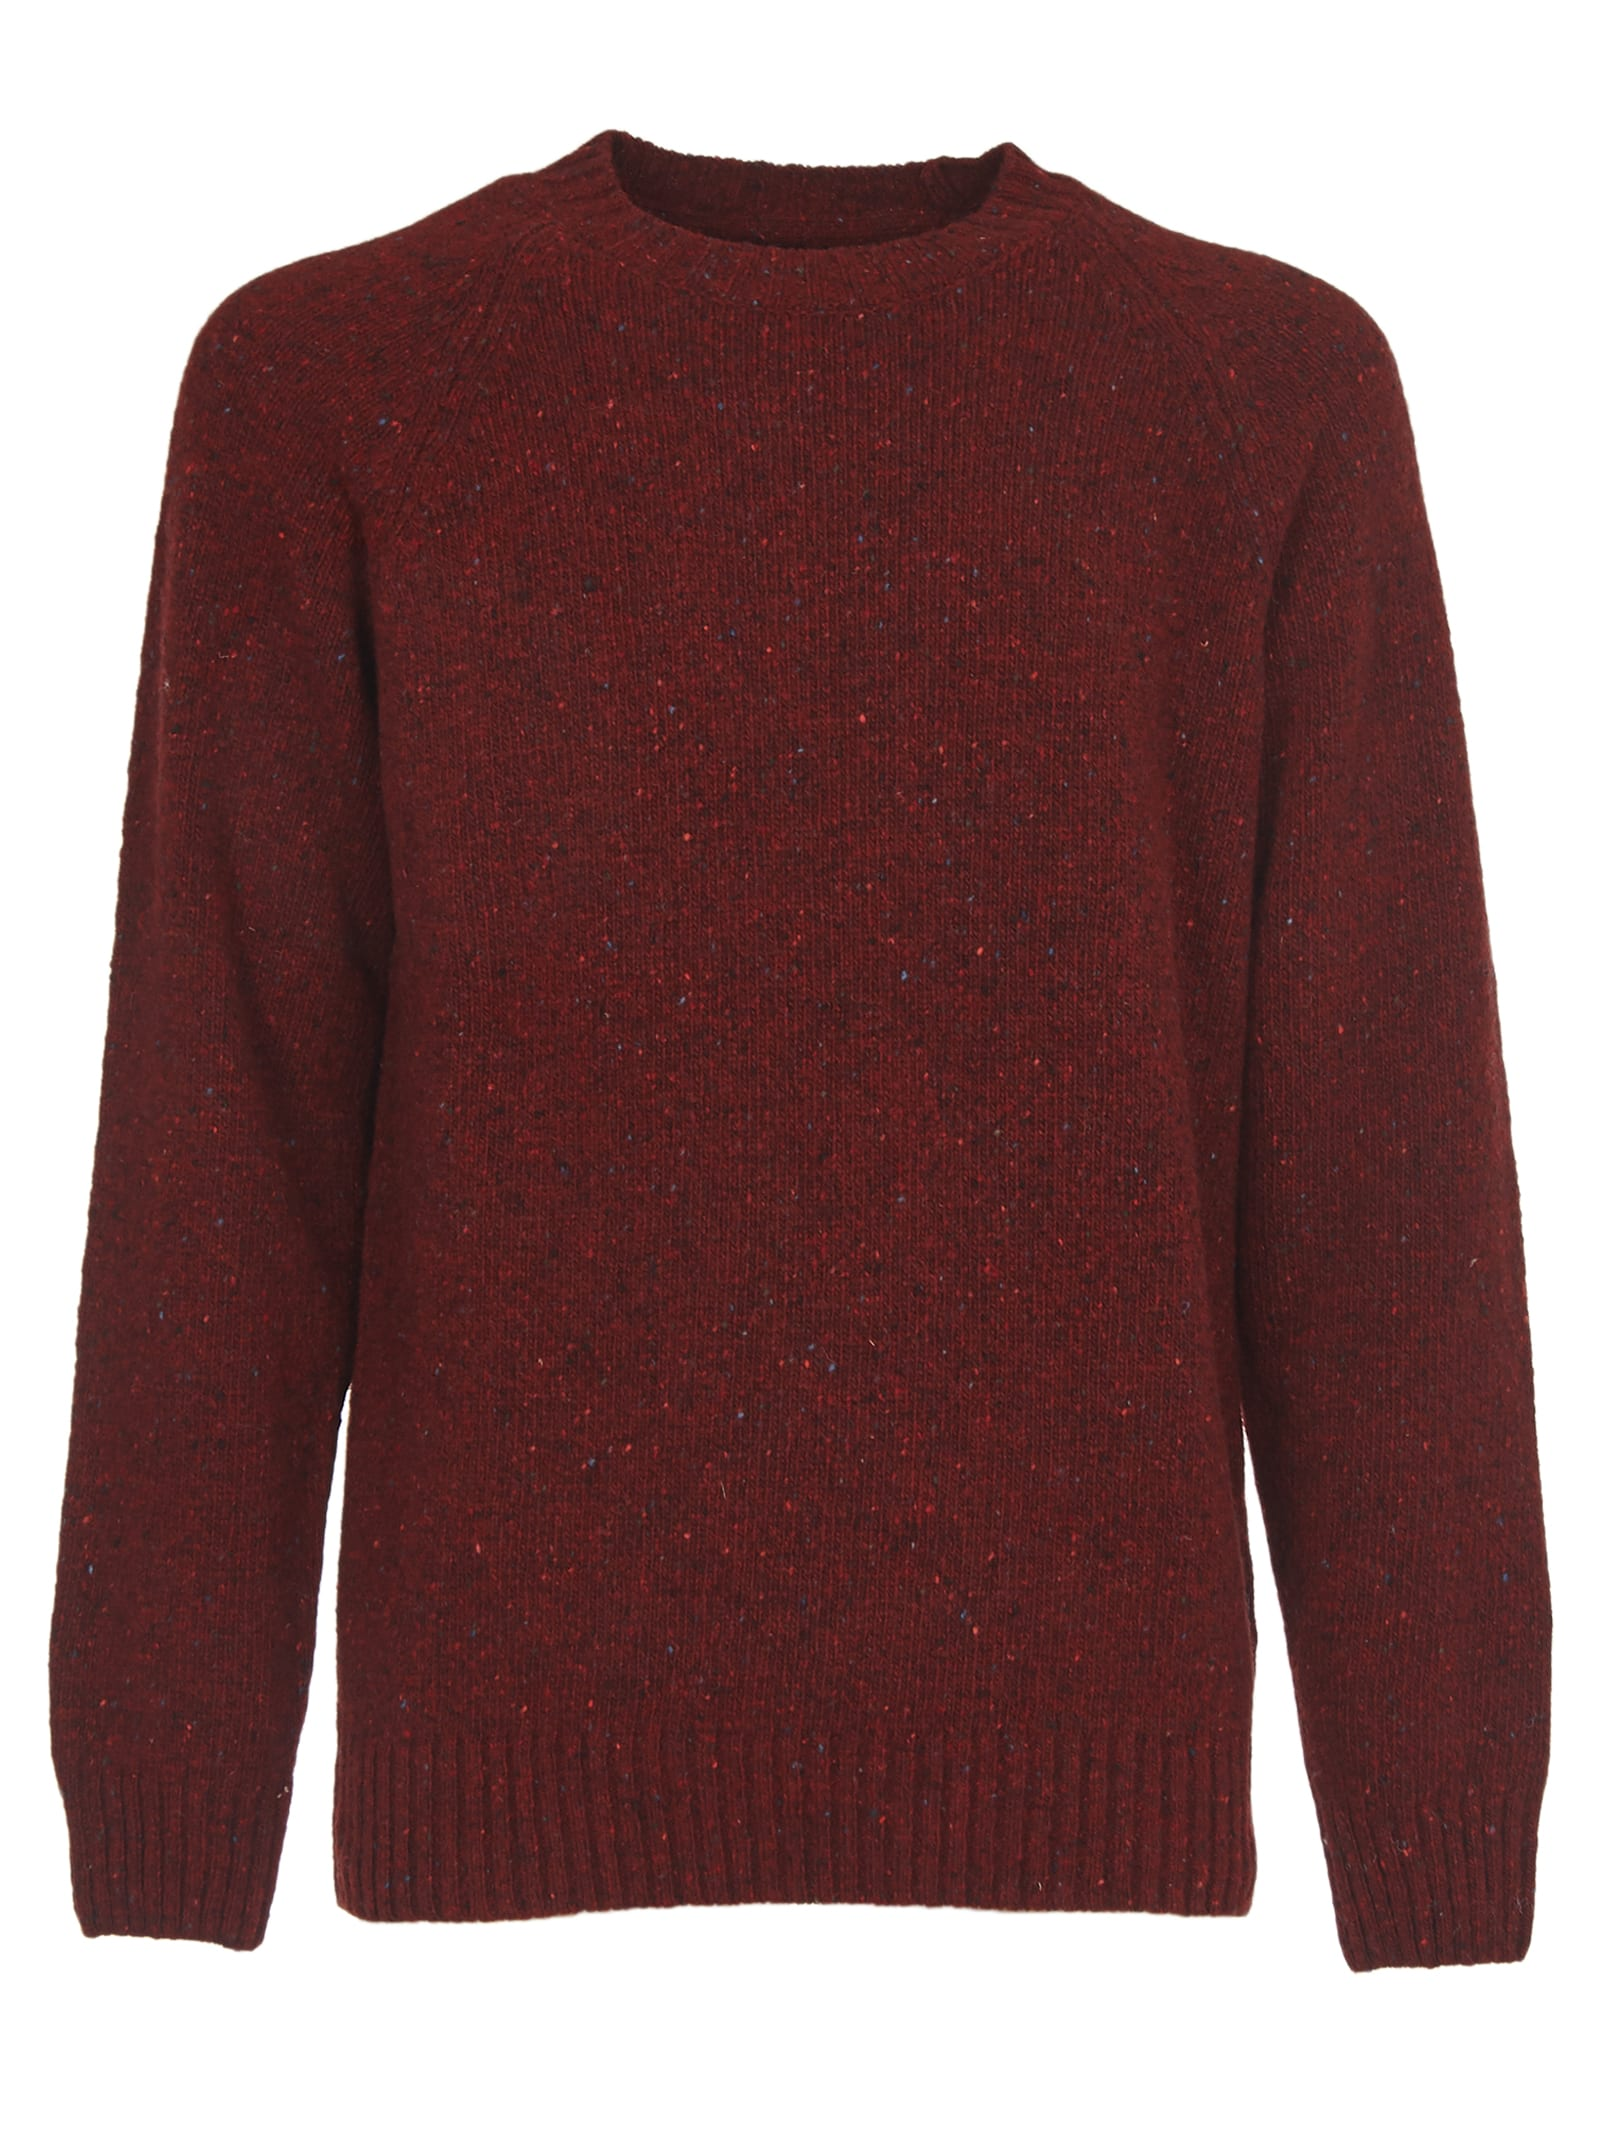 Barbour Sweaters BURGUNDY SWEATER